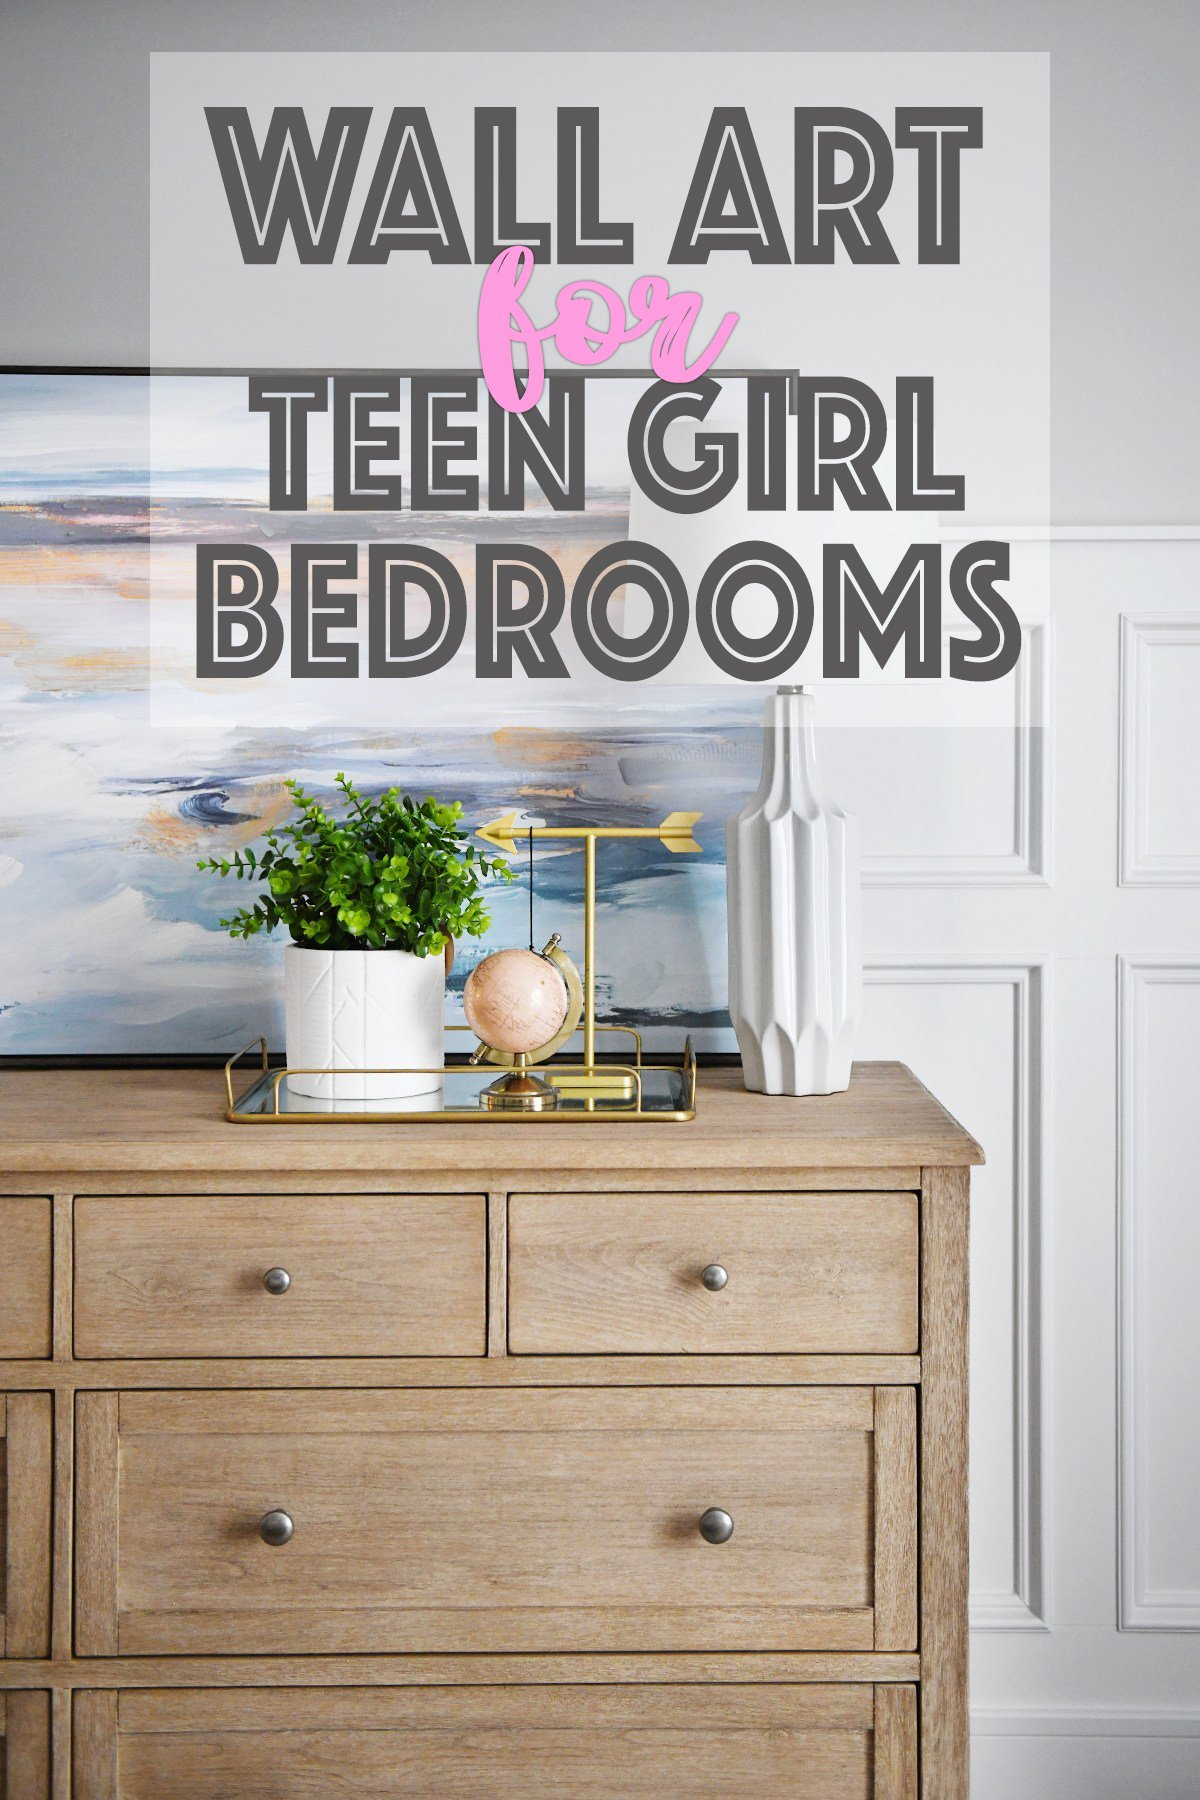 Wall Art For Teenage Girl Bedrooms Pink Peppermint Design